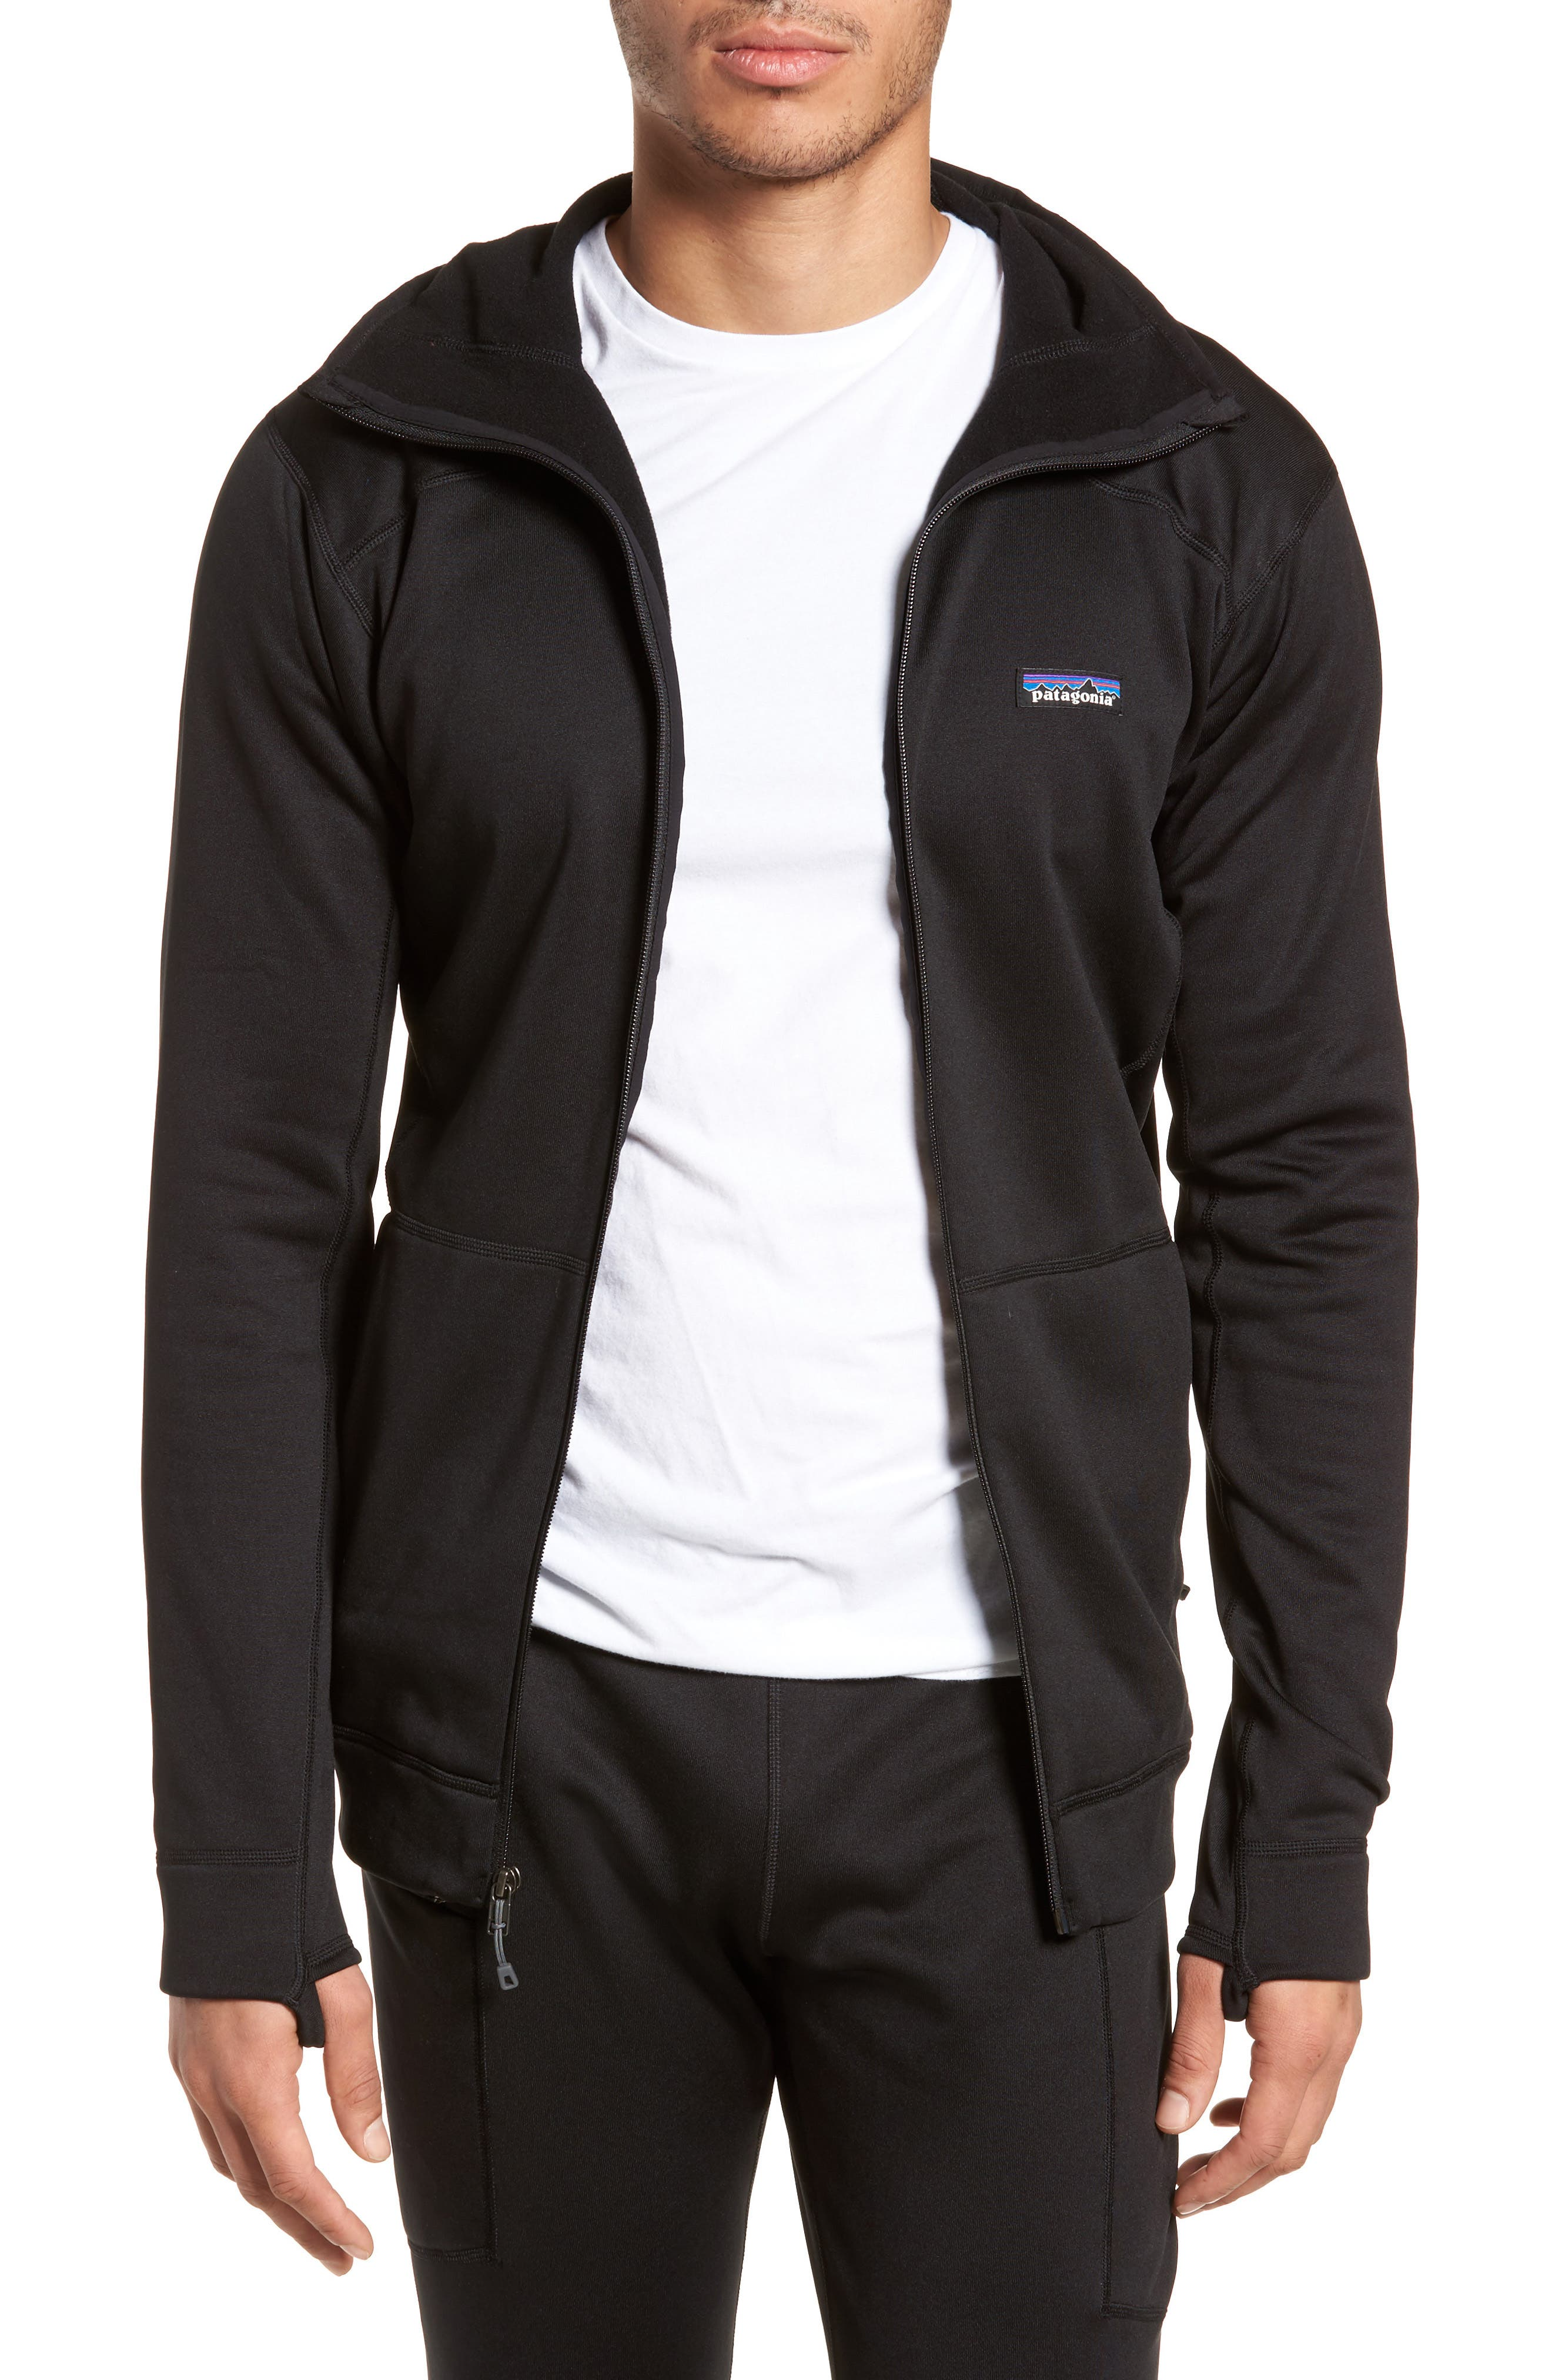 M's Crosstrek Zip Hoodie,                             Main thumbnail 1, color,                             Black